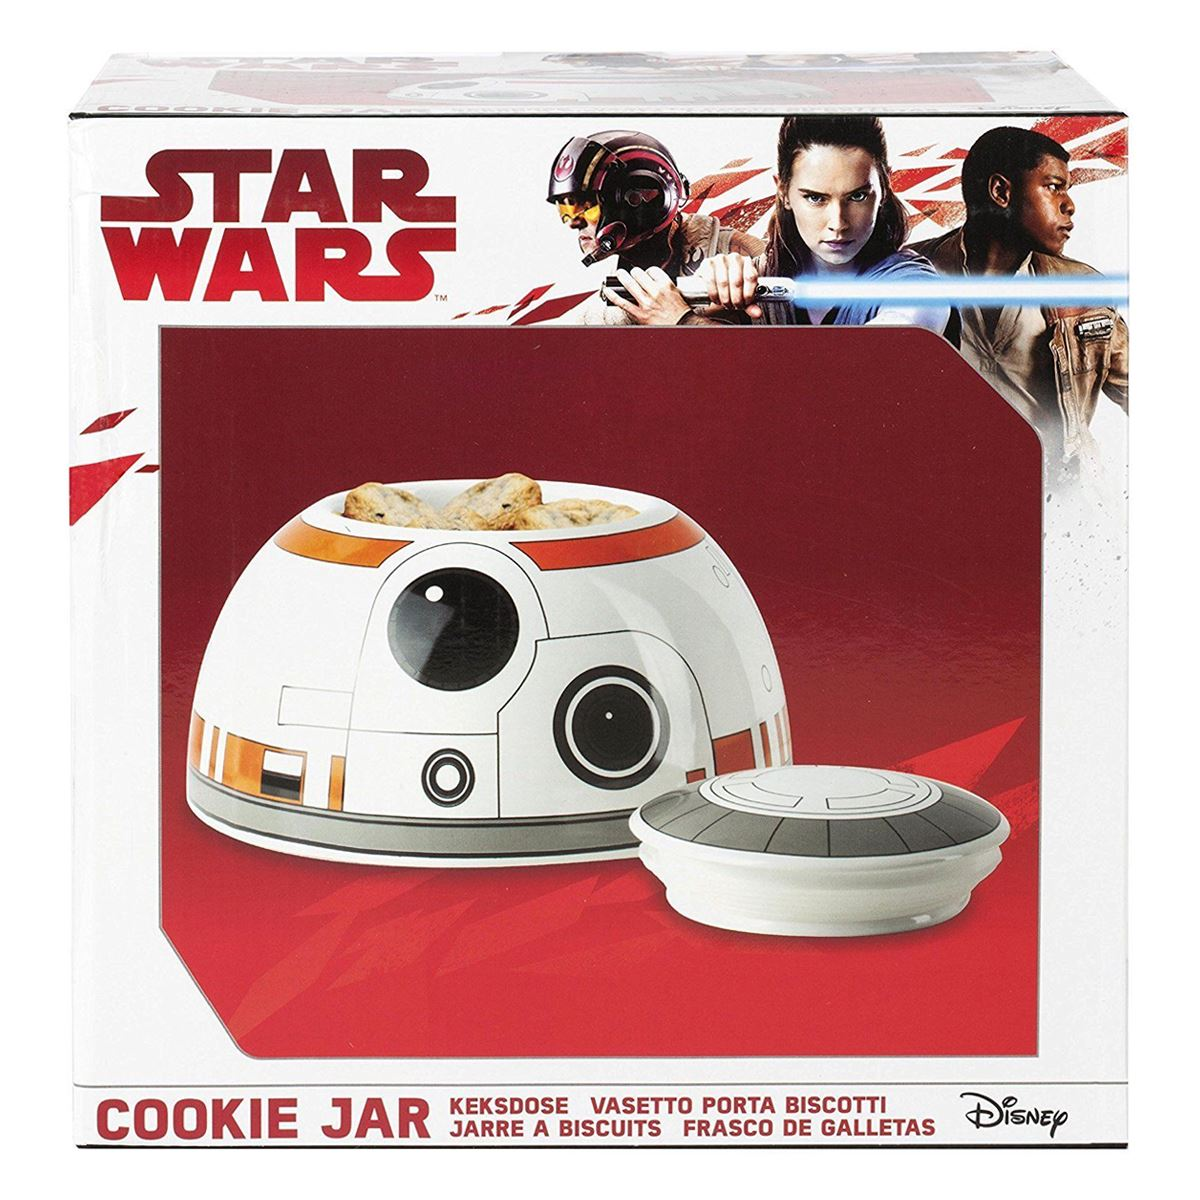 Star Wars Cookie Jars New Star Wars R2 D2 Or Bb 8 Dome Cookie Jar Ceramic